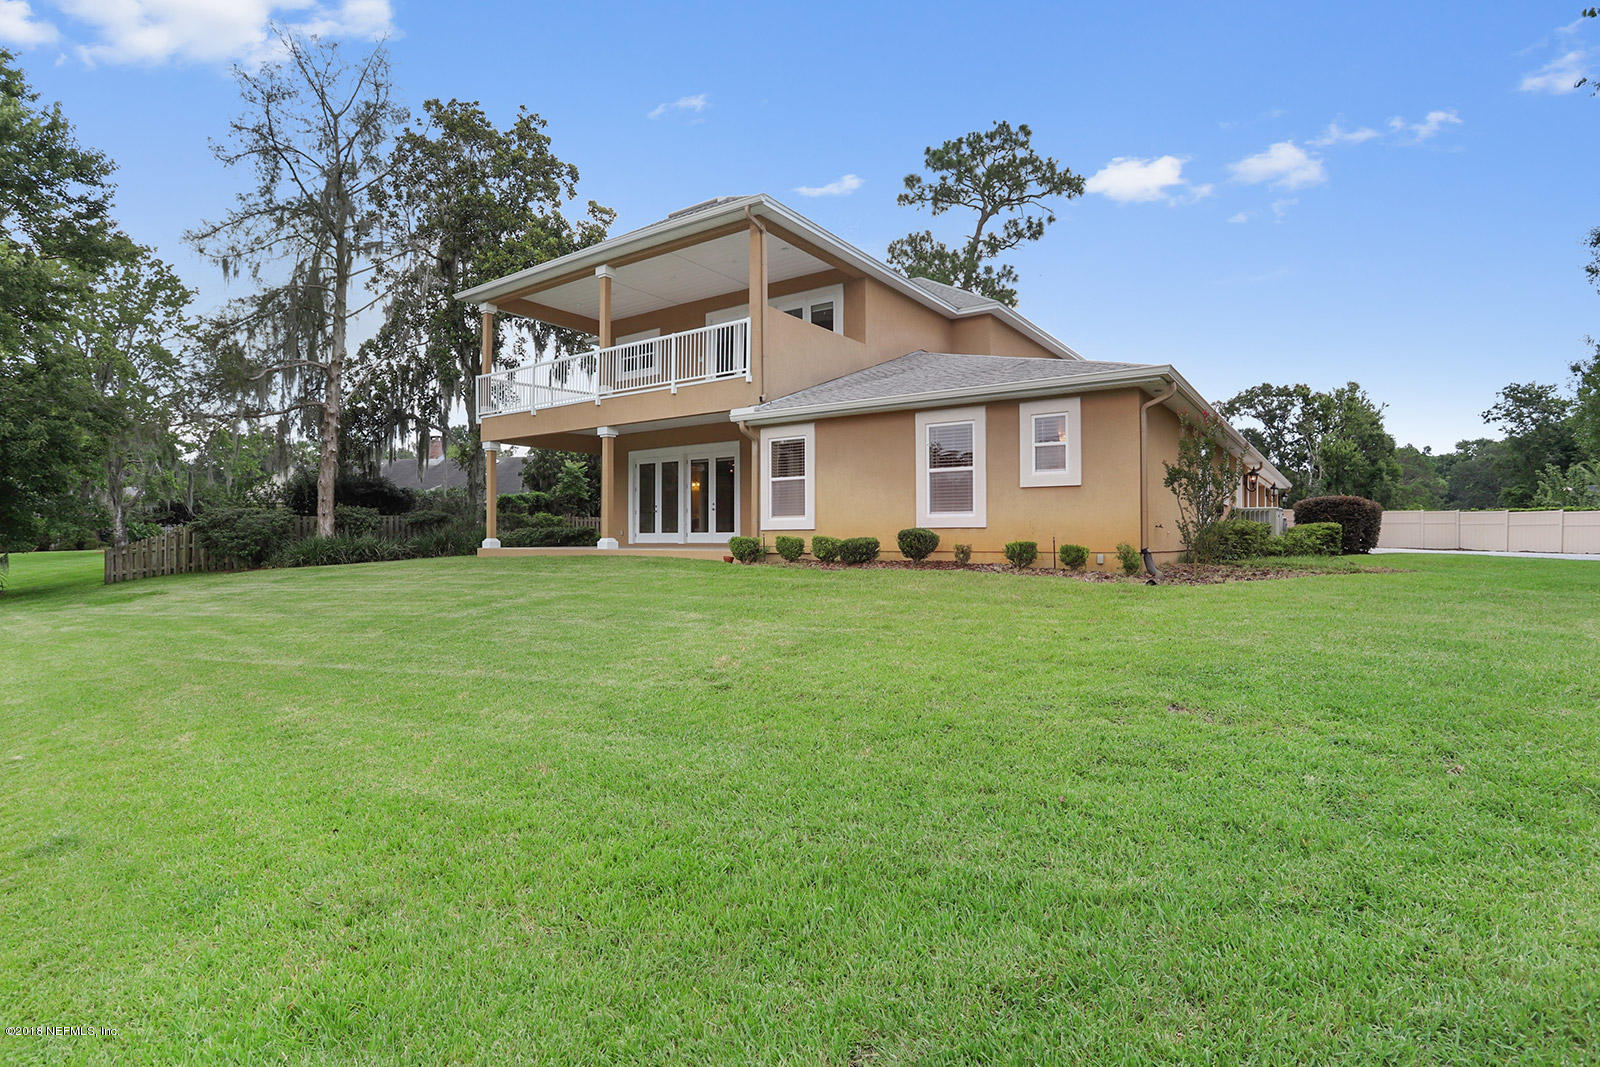 7936 PINE LAKE, JACKSONVILLE, FLORIDA 32256, 4 Bedrooms Bedrooms, ,4 BathroomsBathrooms,Residential - single family,For sale,PINE LAKE,943469